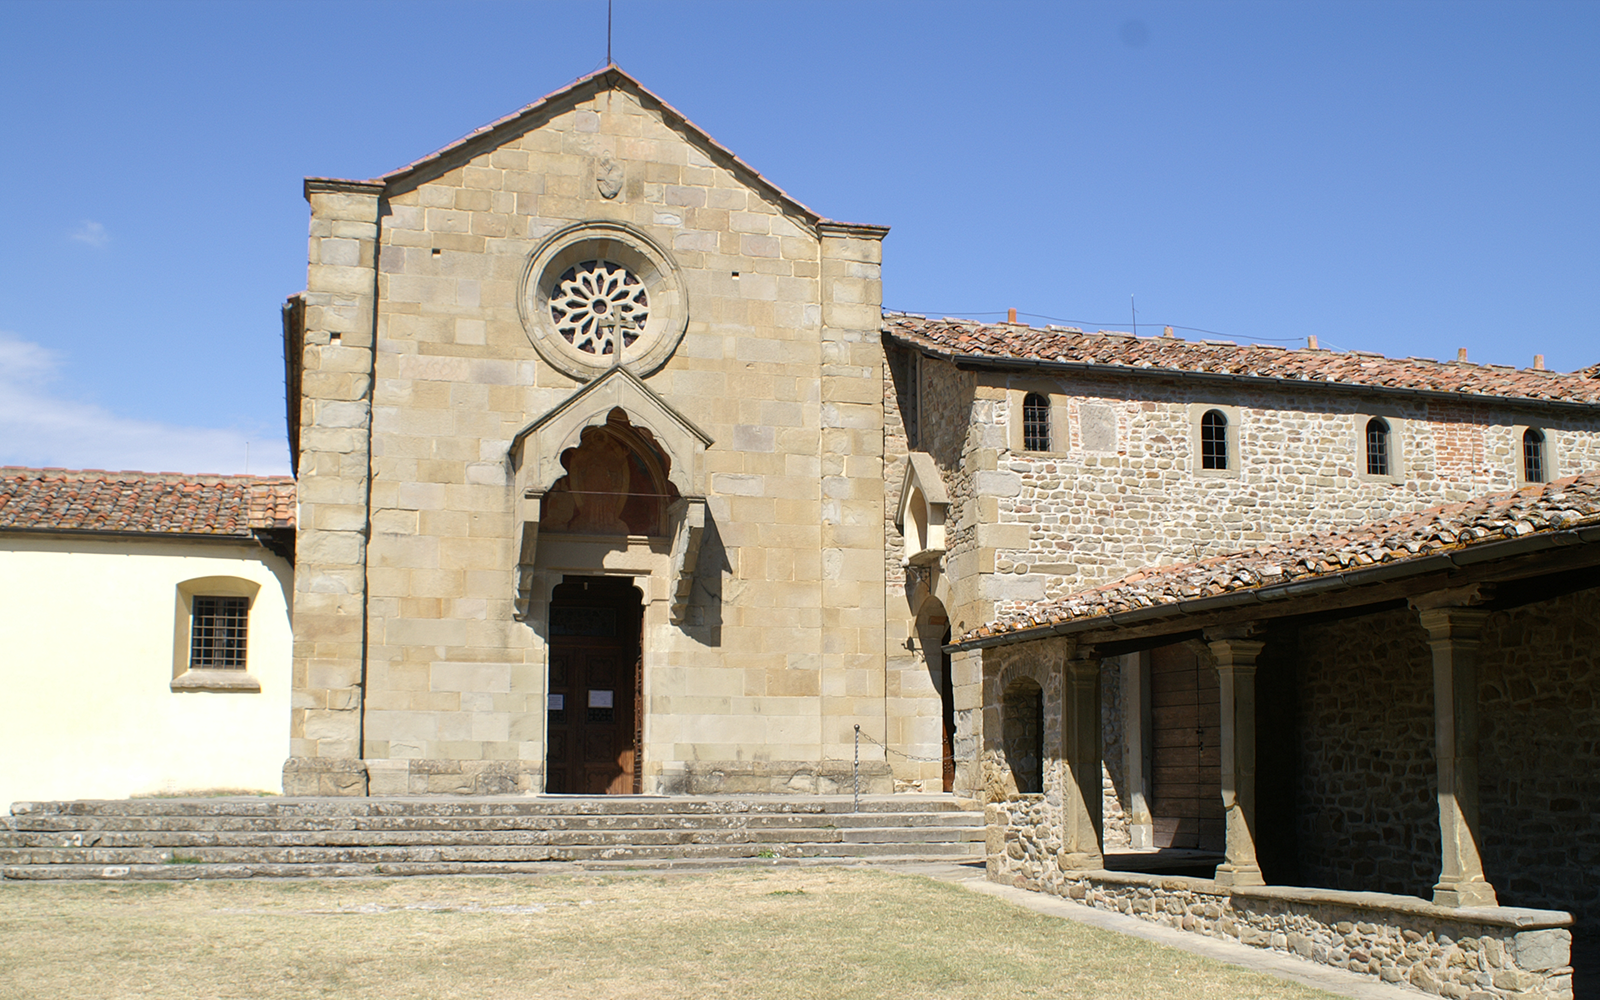 Convent of San Francesco in Fiesole